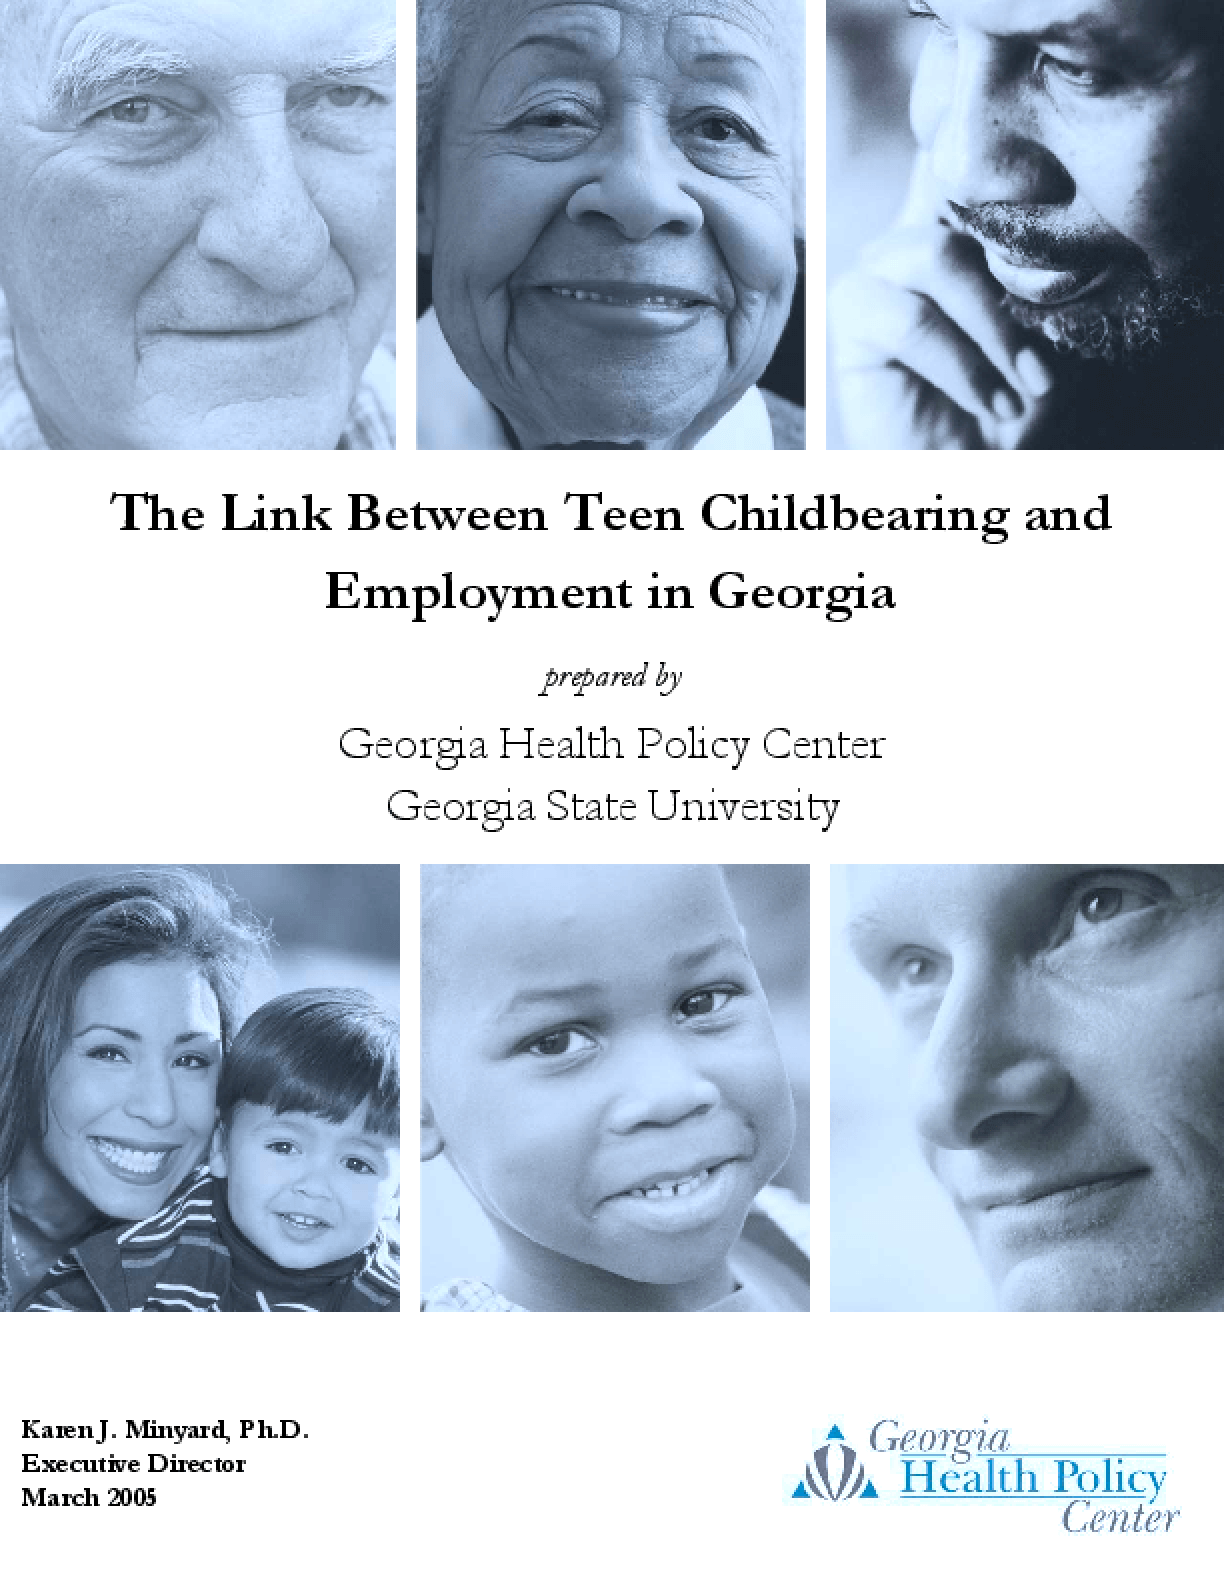 The Link between Teen Childbearing and Employment in Georgia